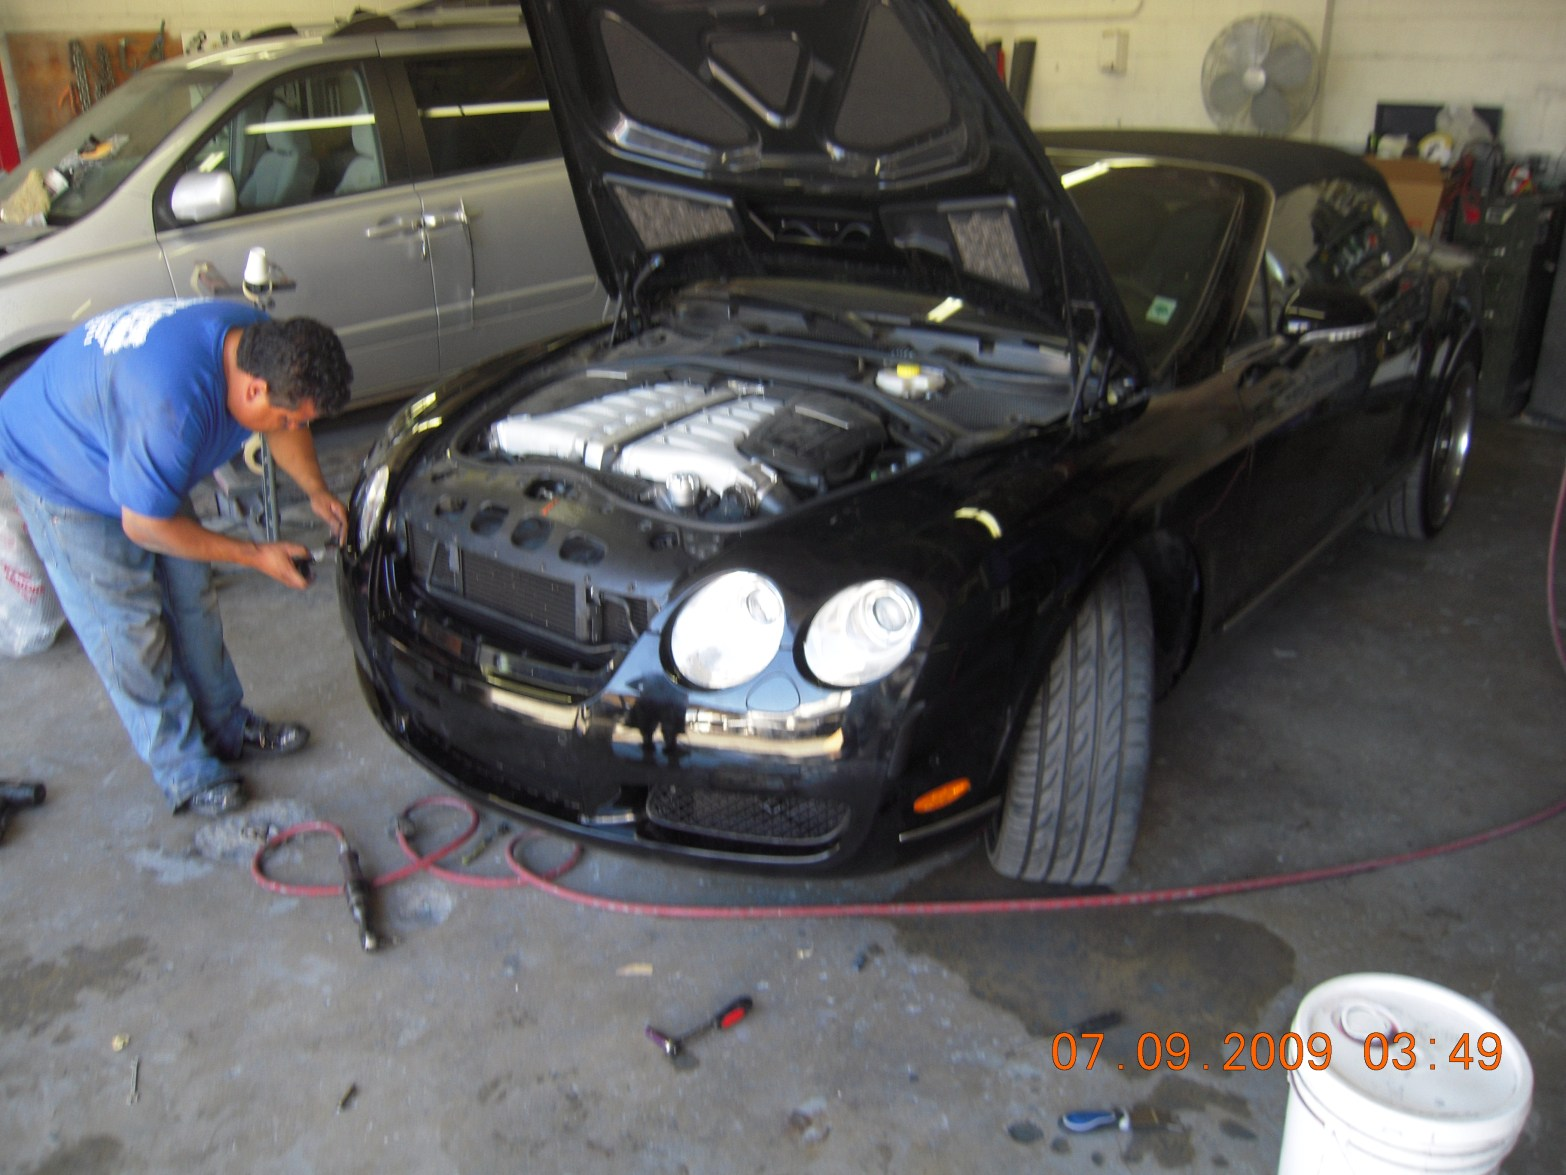 west-coast-body-and-paint-black-bentley-11